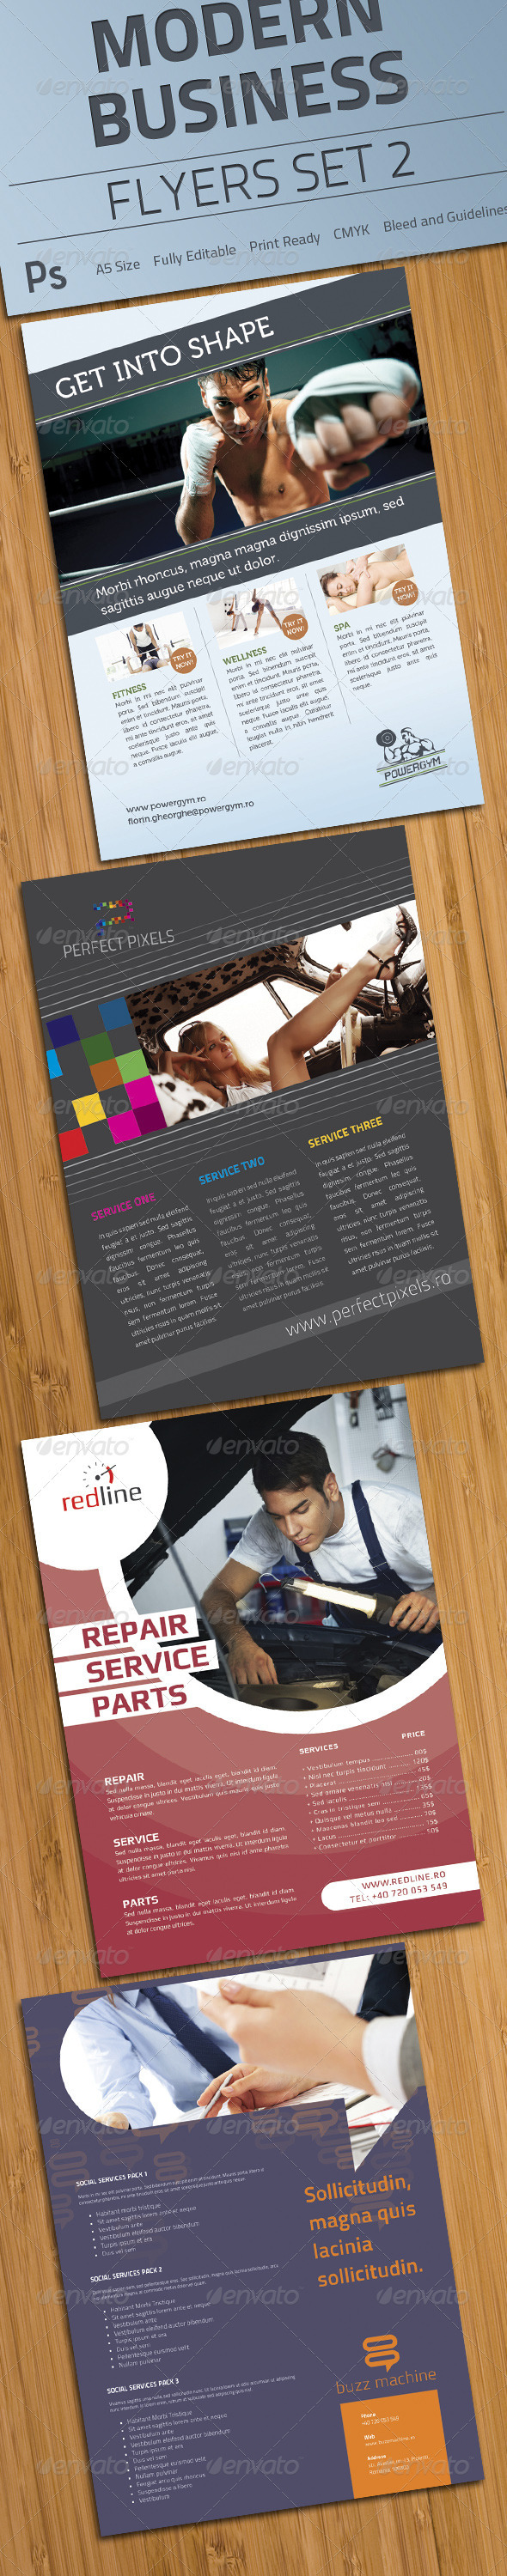 GraphicRiver Modern Business Flyers Set 2 1613064